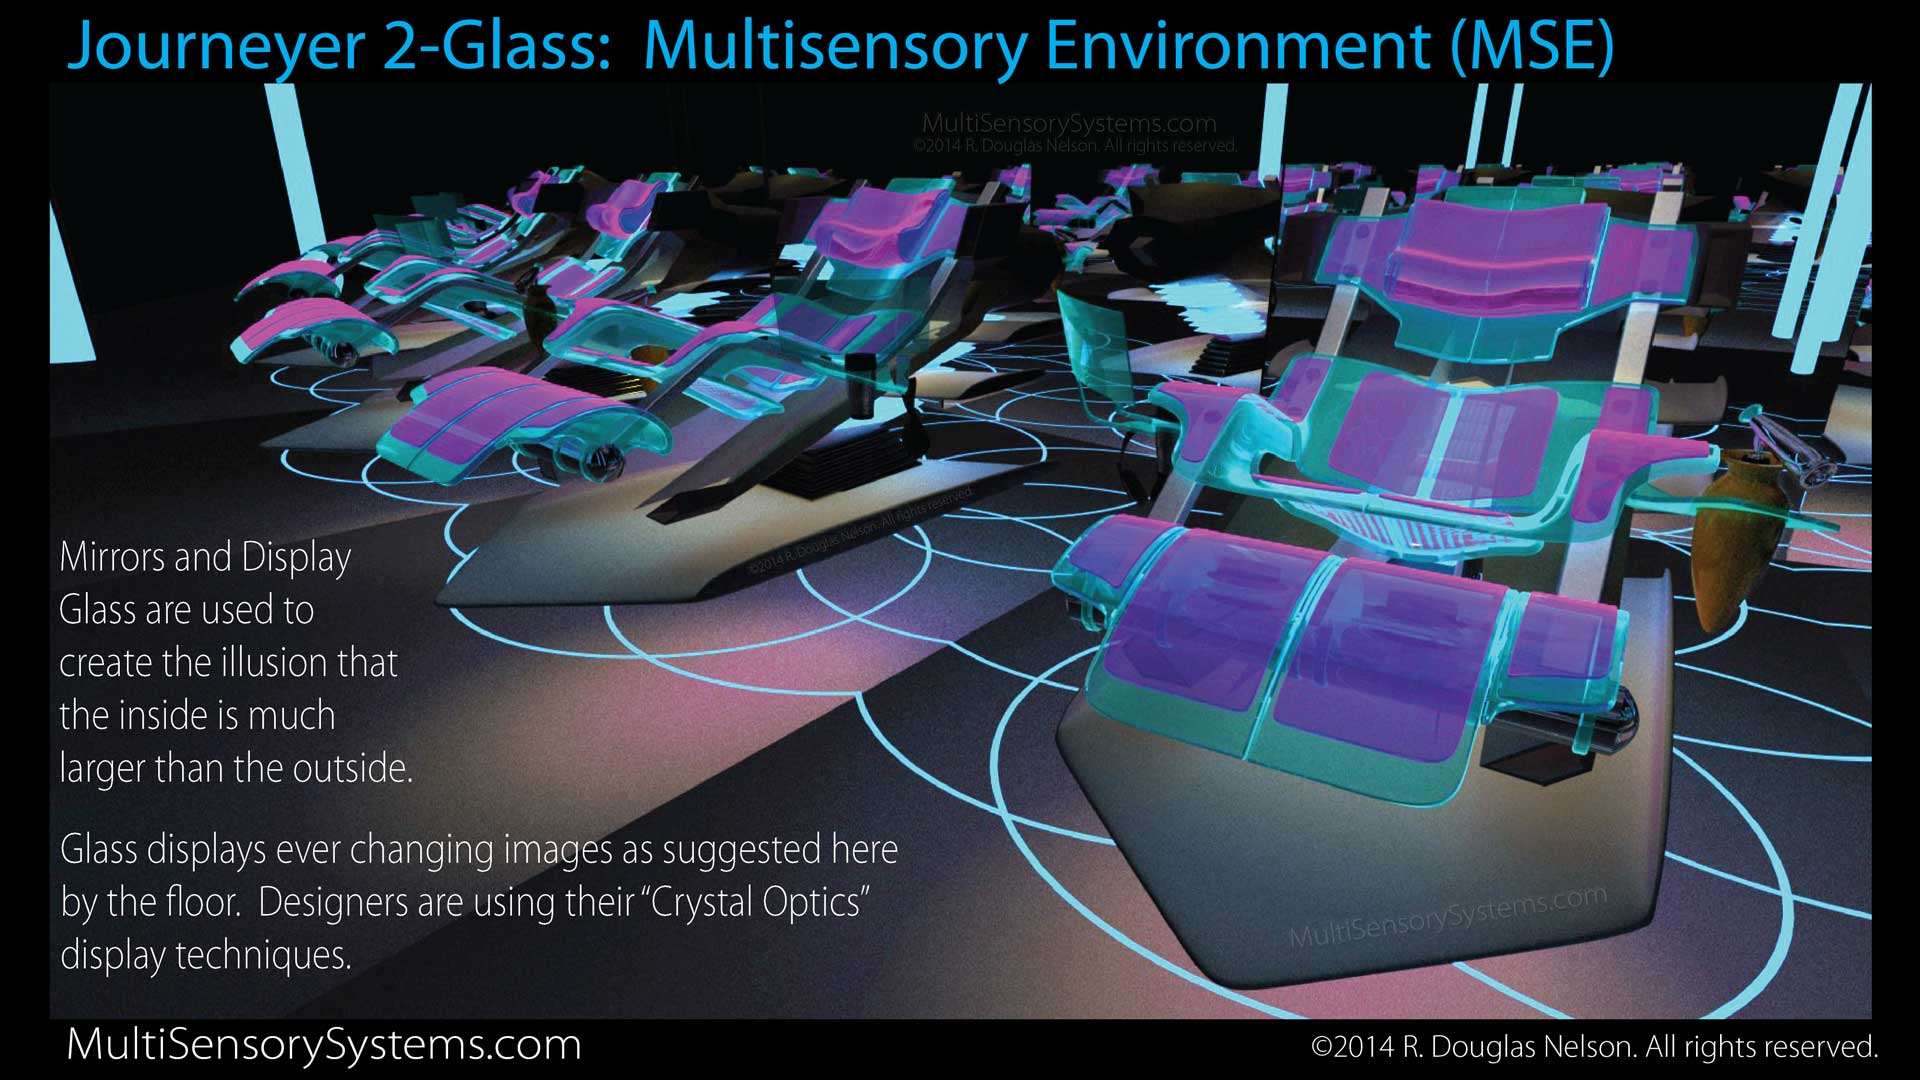 J2-G_Viewed in MultiSensory Enviroment (MSE)